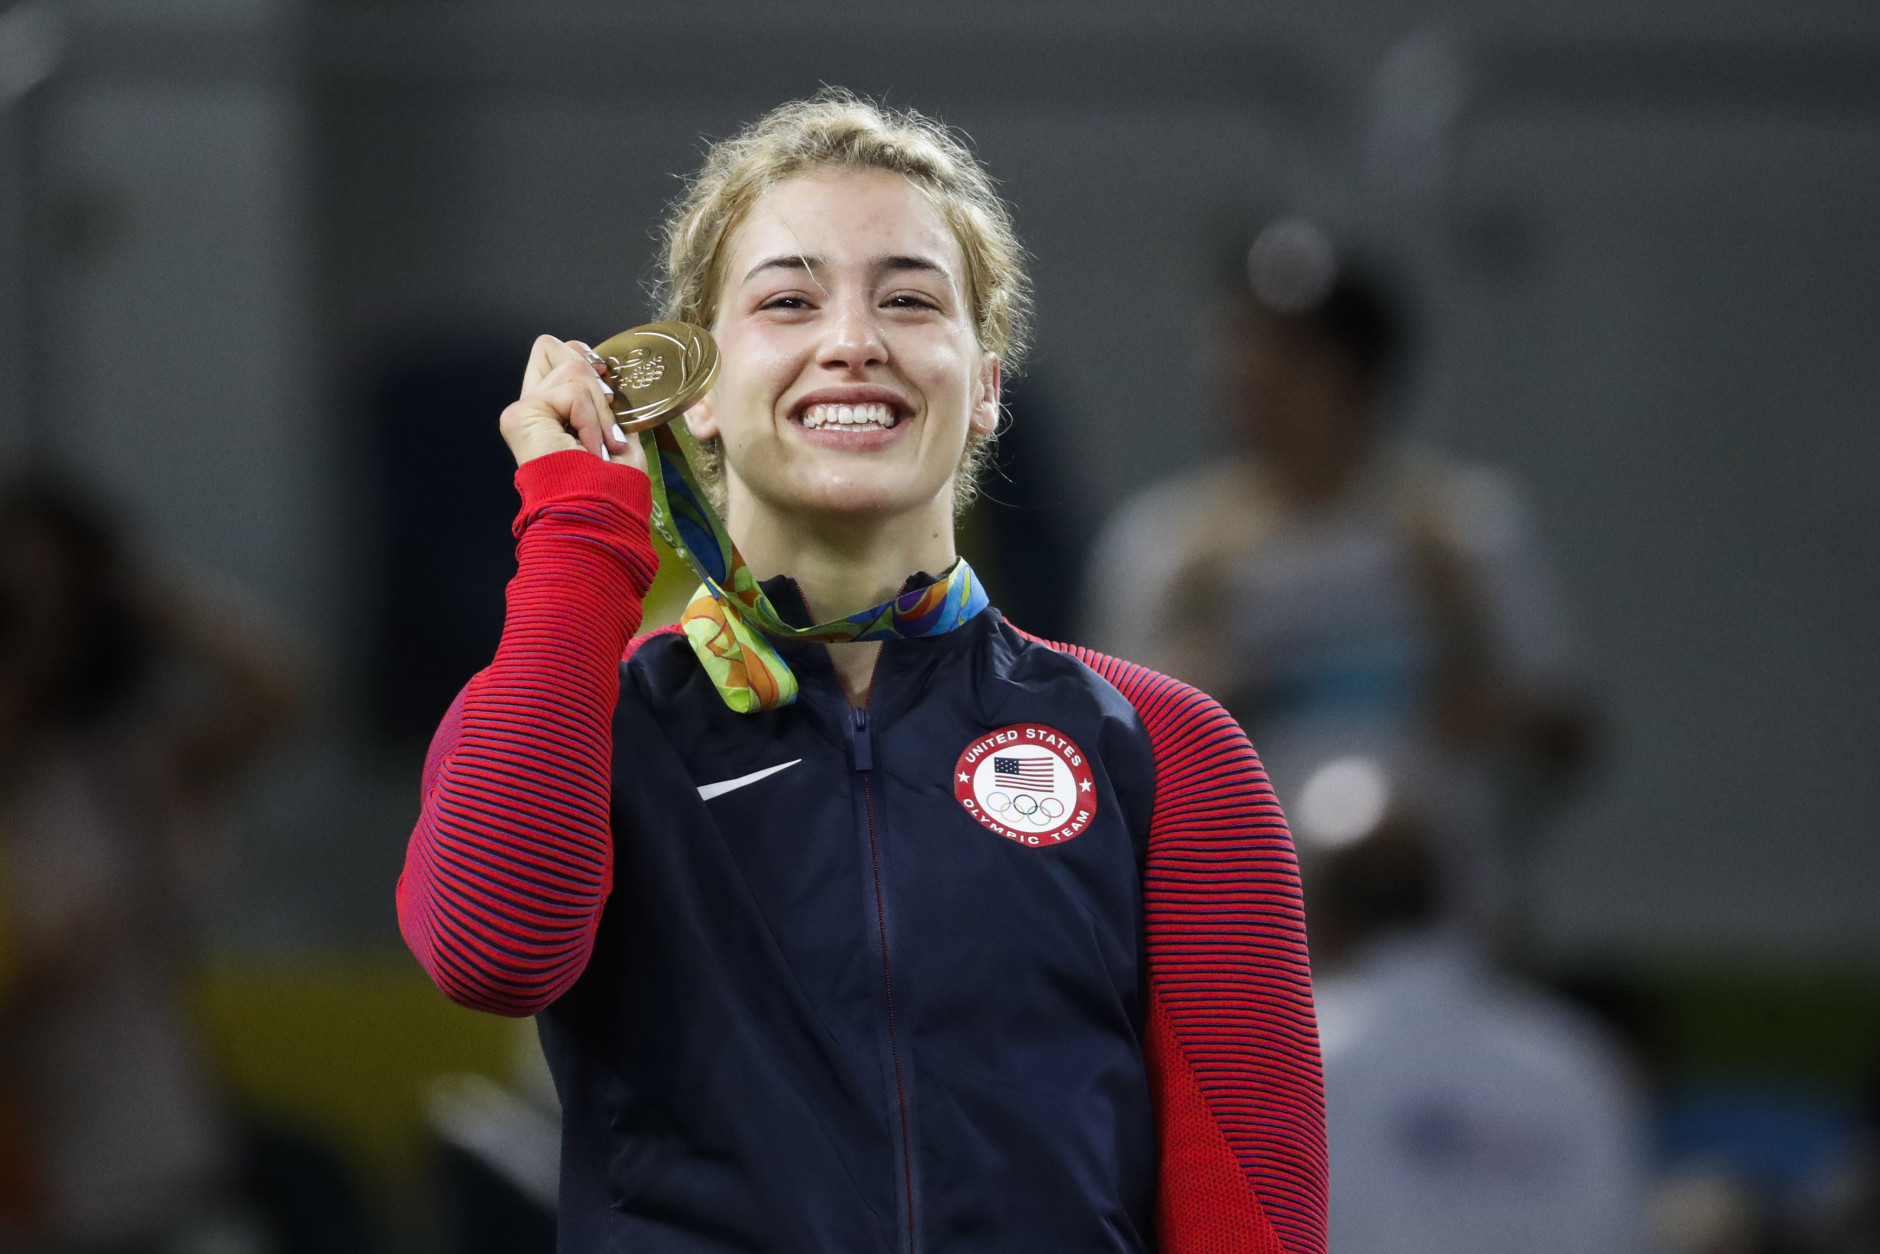 United States' Helen Louise Maroulis reacts during the winners ceremony for the women's 53-kg freestyle wrestling competition at the 2016 Summer Olympics in Rio de Janeiro, Brazil, Thursday, Aug. 18, 2016. (AP Photo/Markus Schreiber)